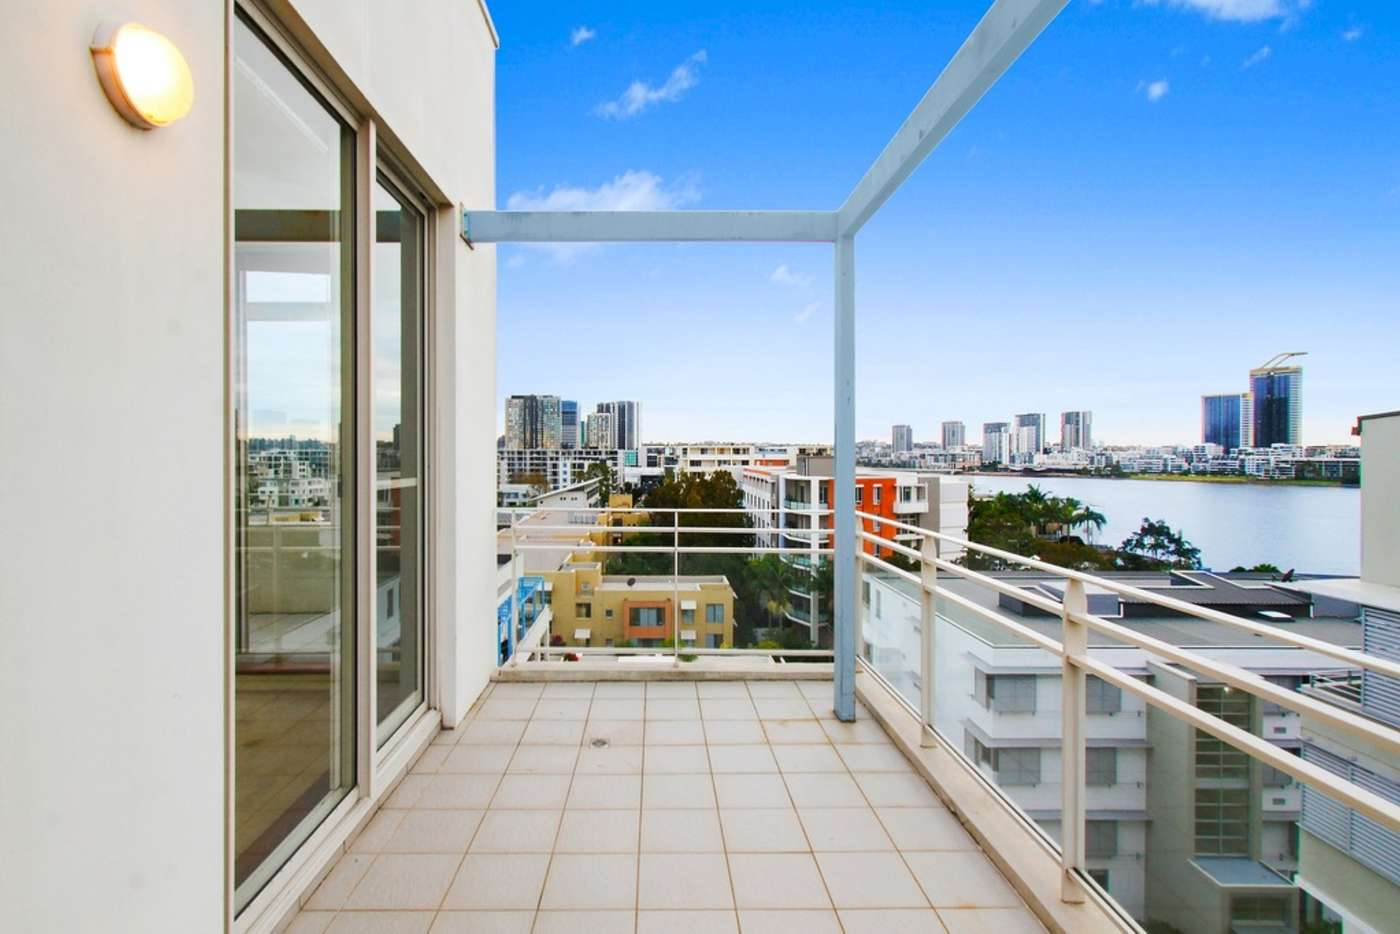 Main view of Homely apartment listing, 804/2 The Piazza, Wentworth Point NSW 2127